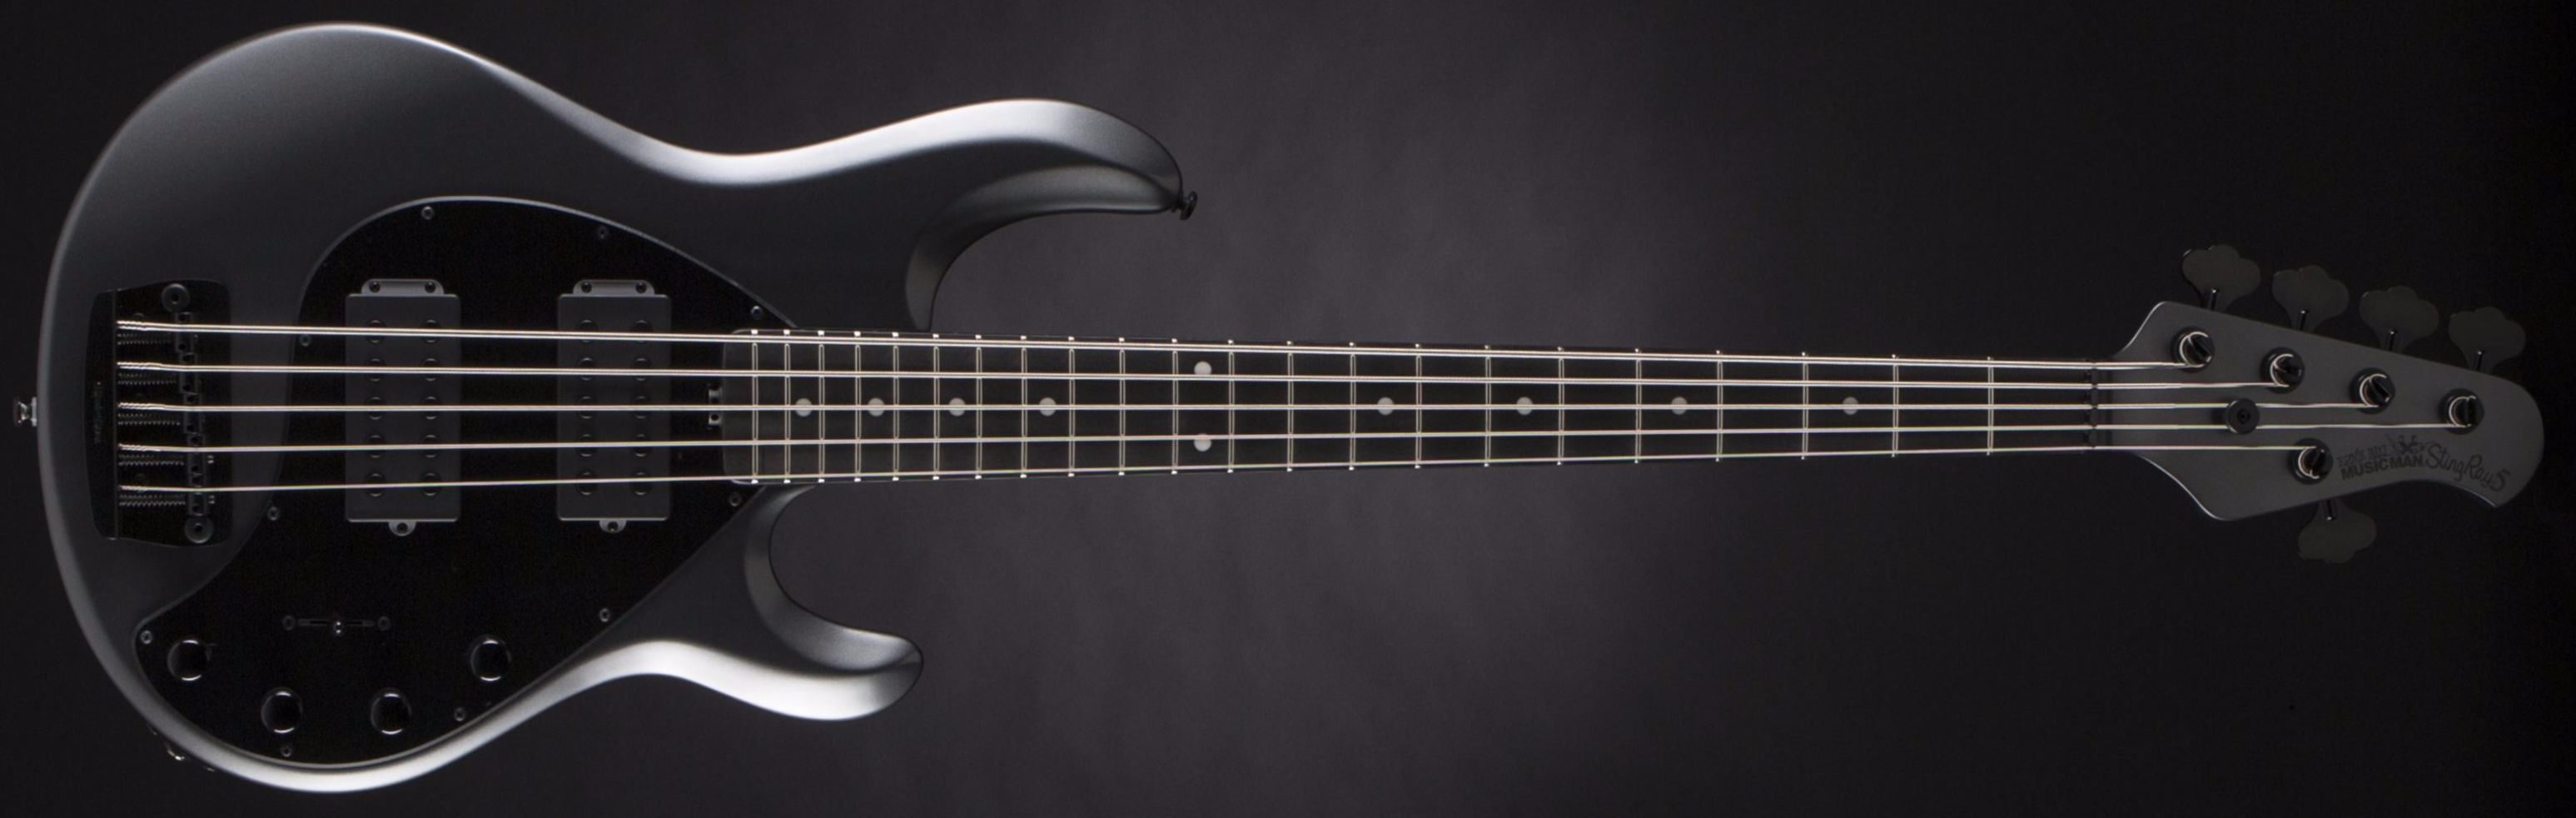 Music Man StingRay 5 3EQ 2H Stealth Charcoal Front